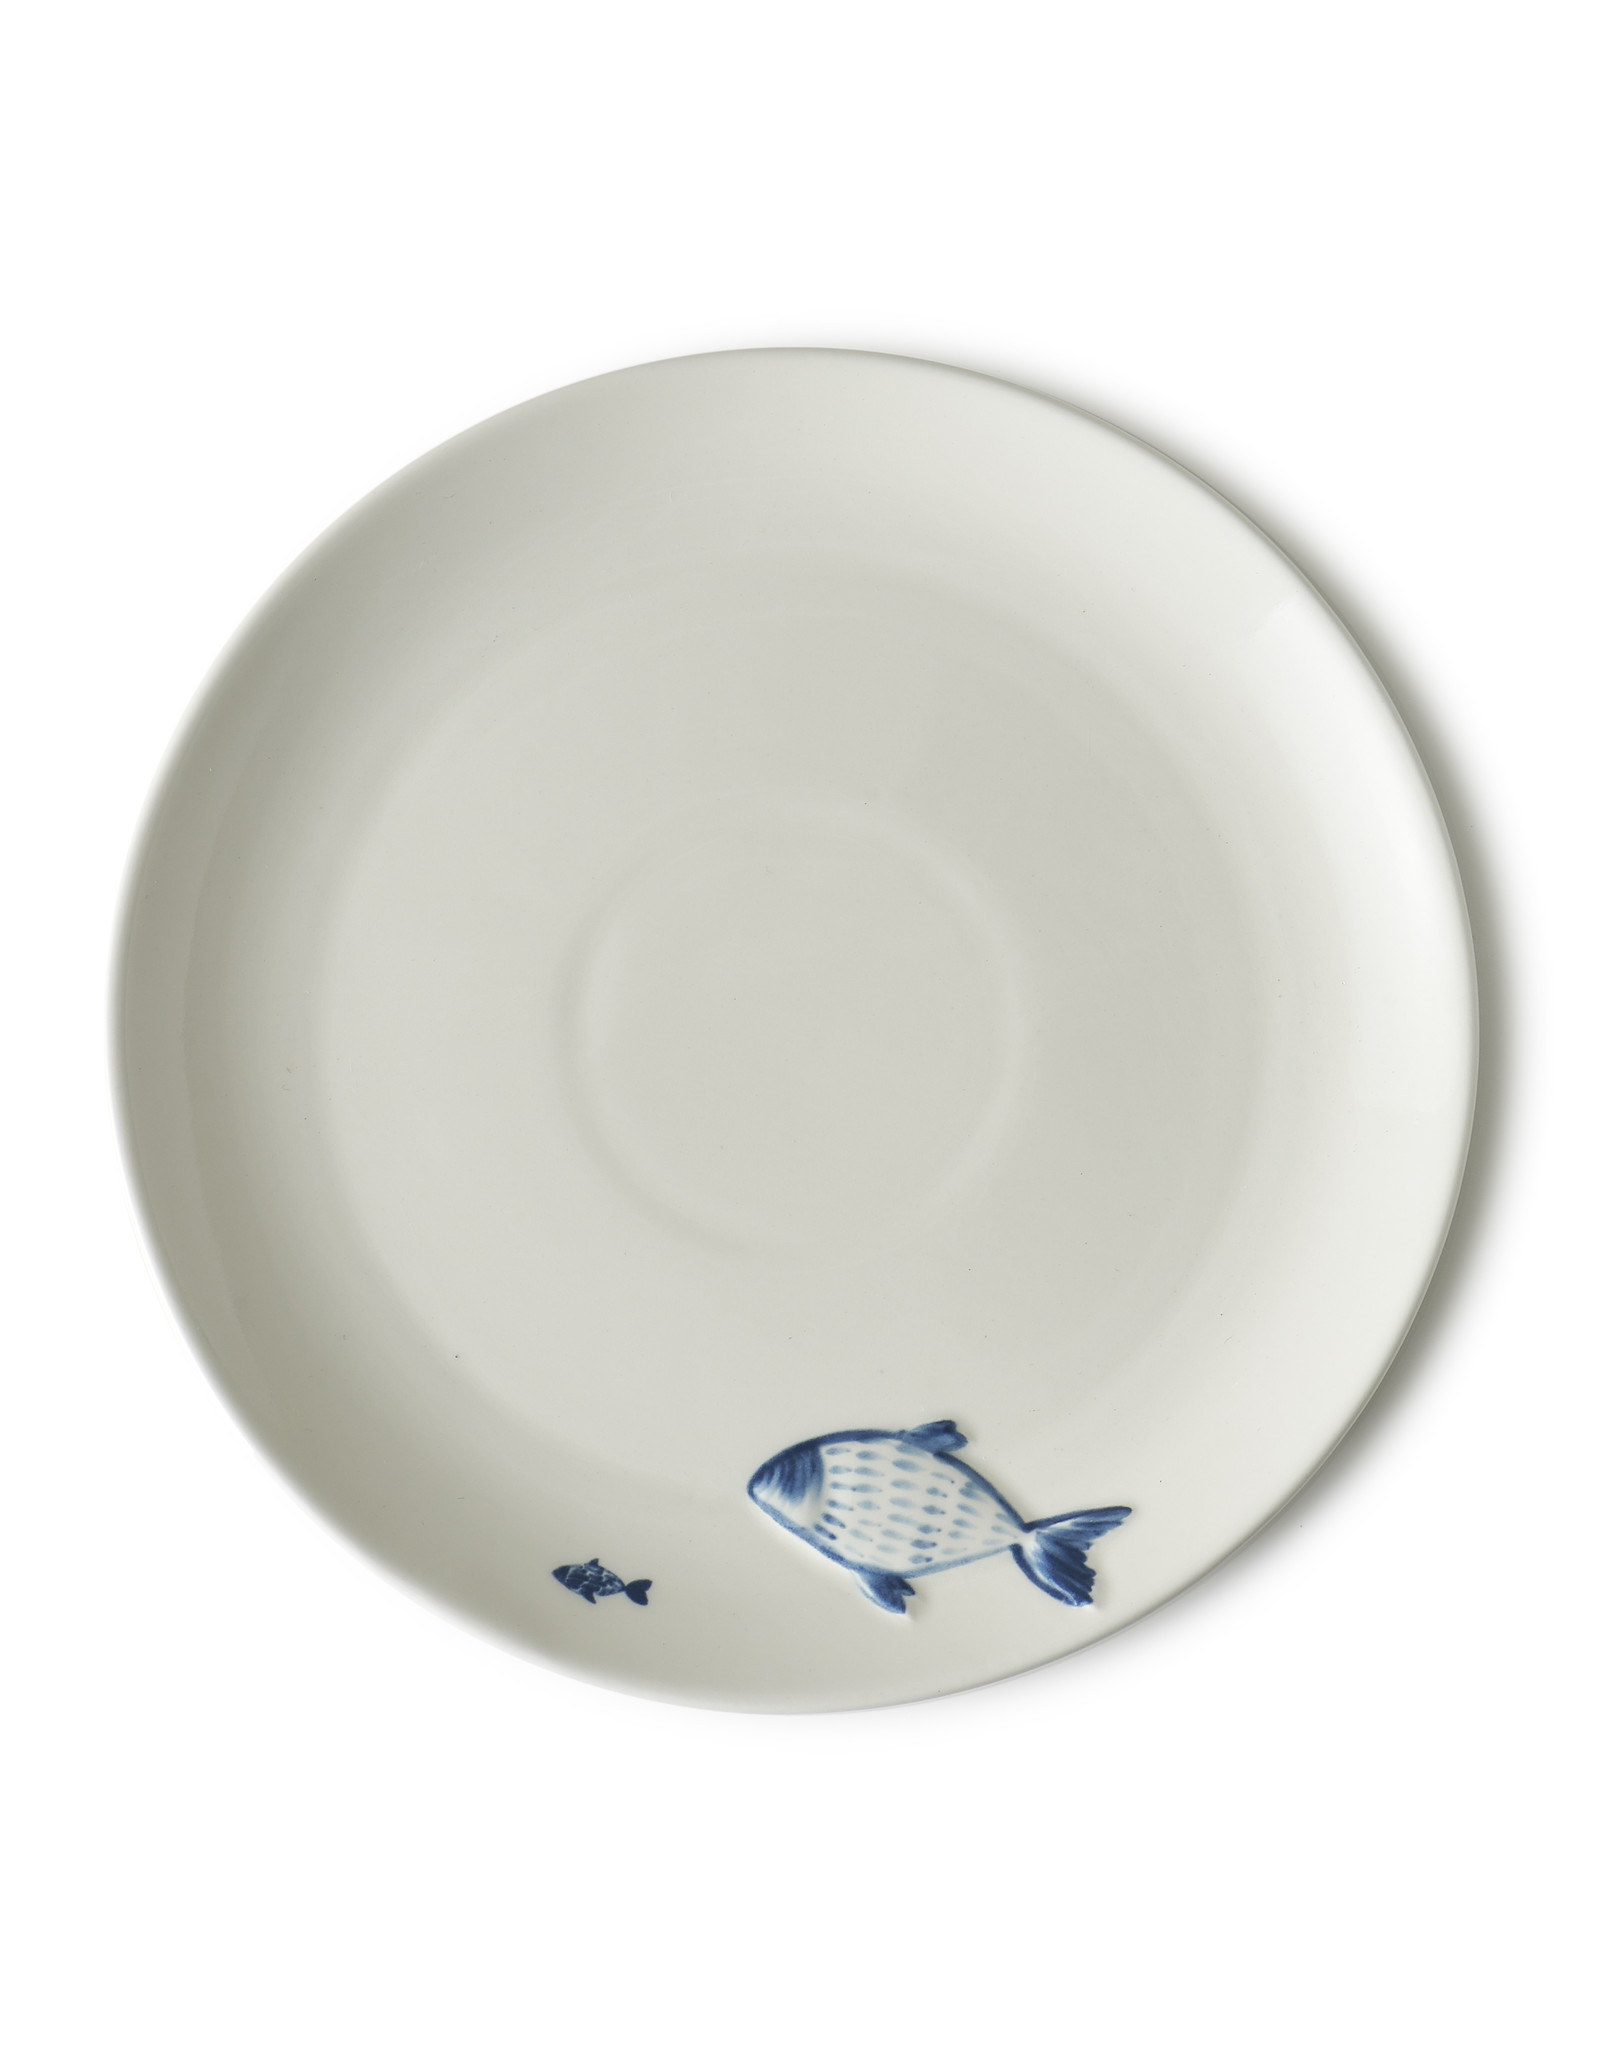 Catch of the Day dinner plate